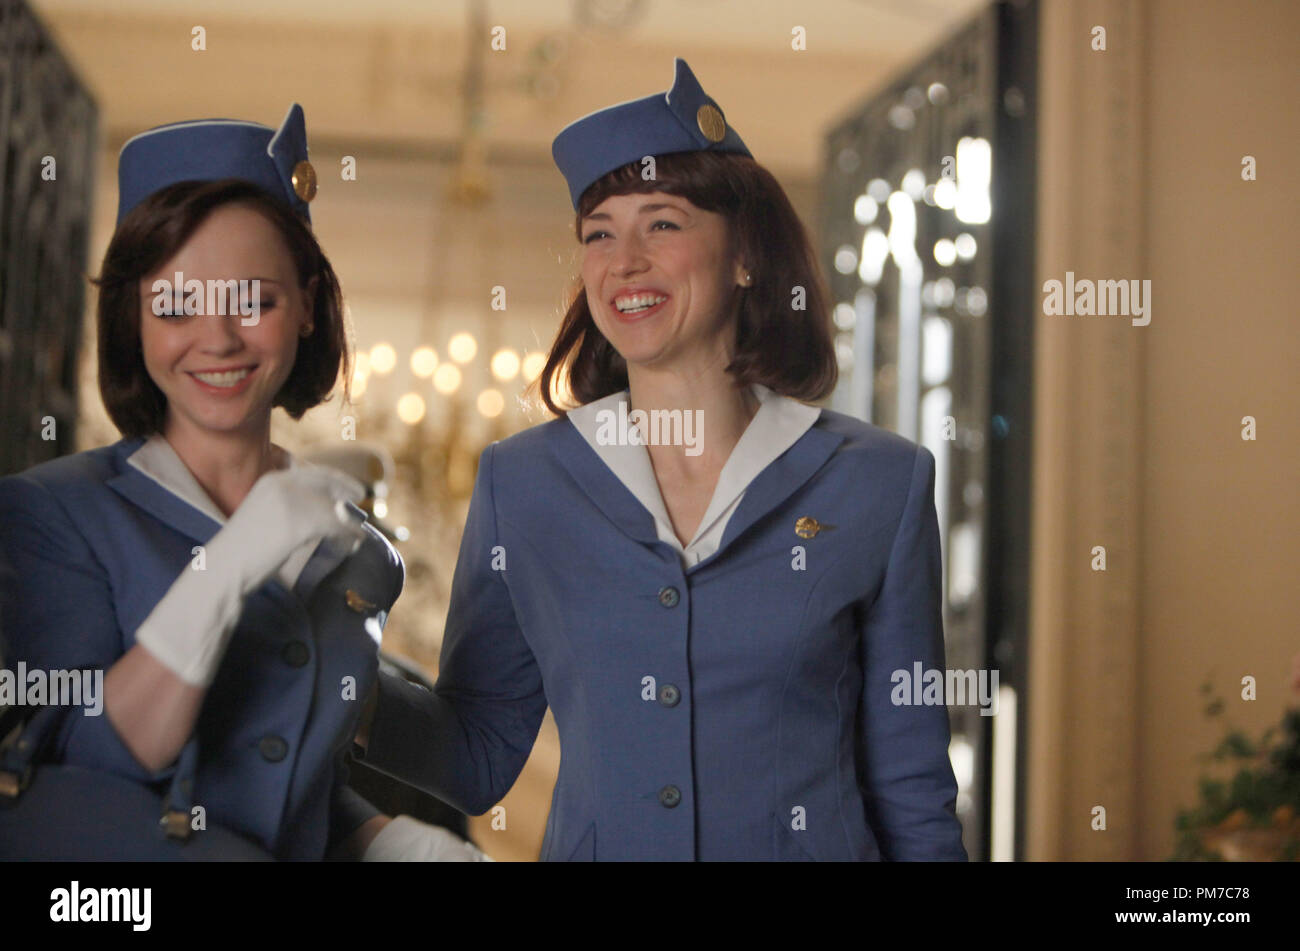 Christina Ricci Karine Vanasse Colette Pan Am Tv Series 2011 Stock Photo Alamy